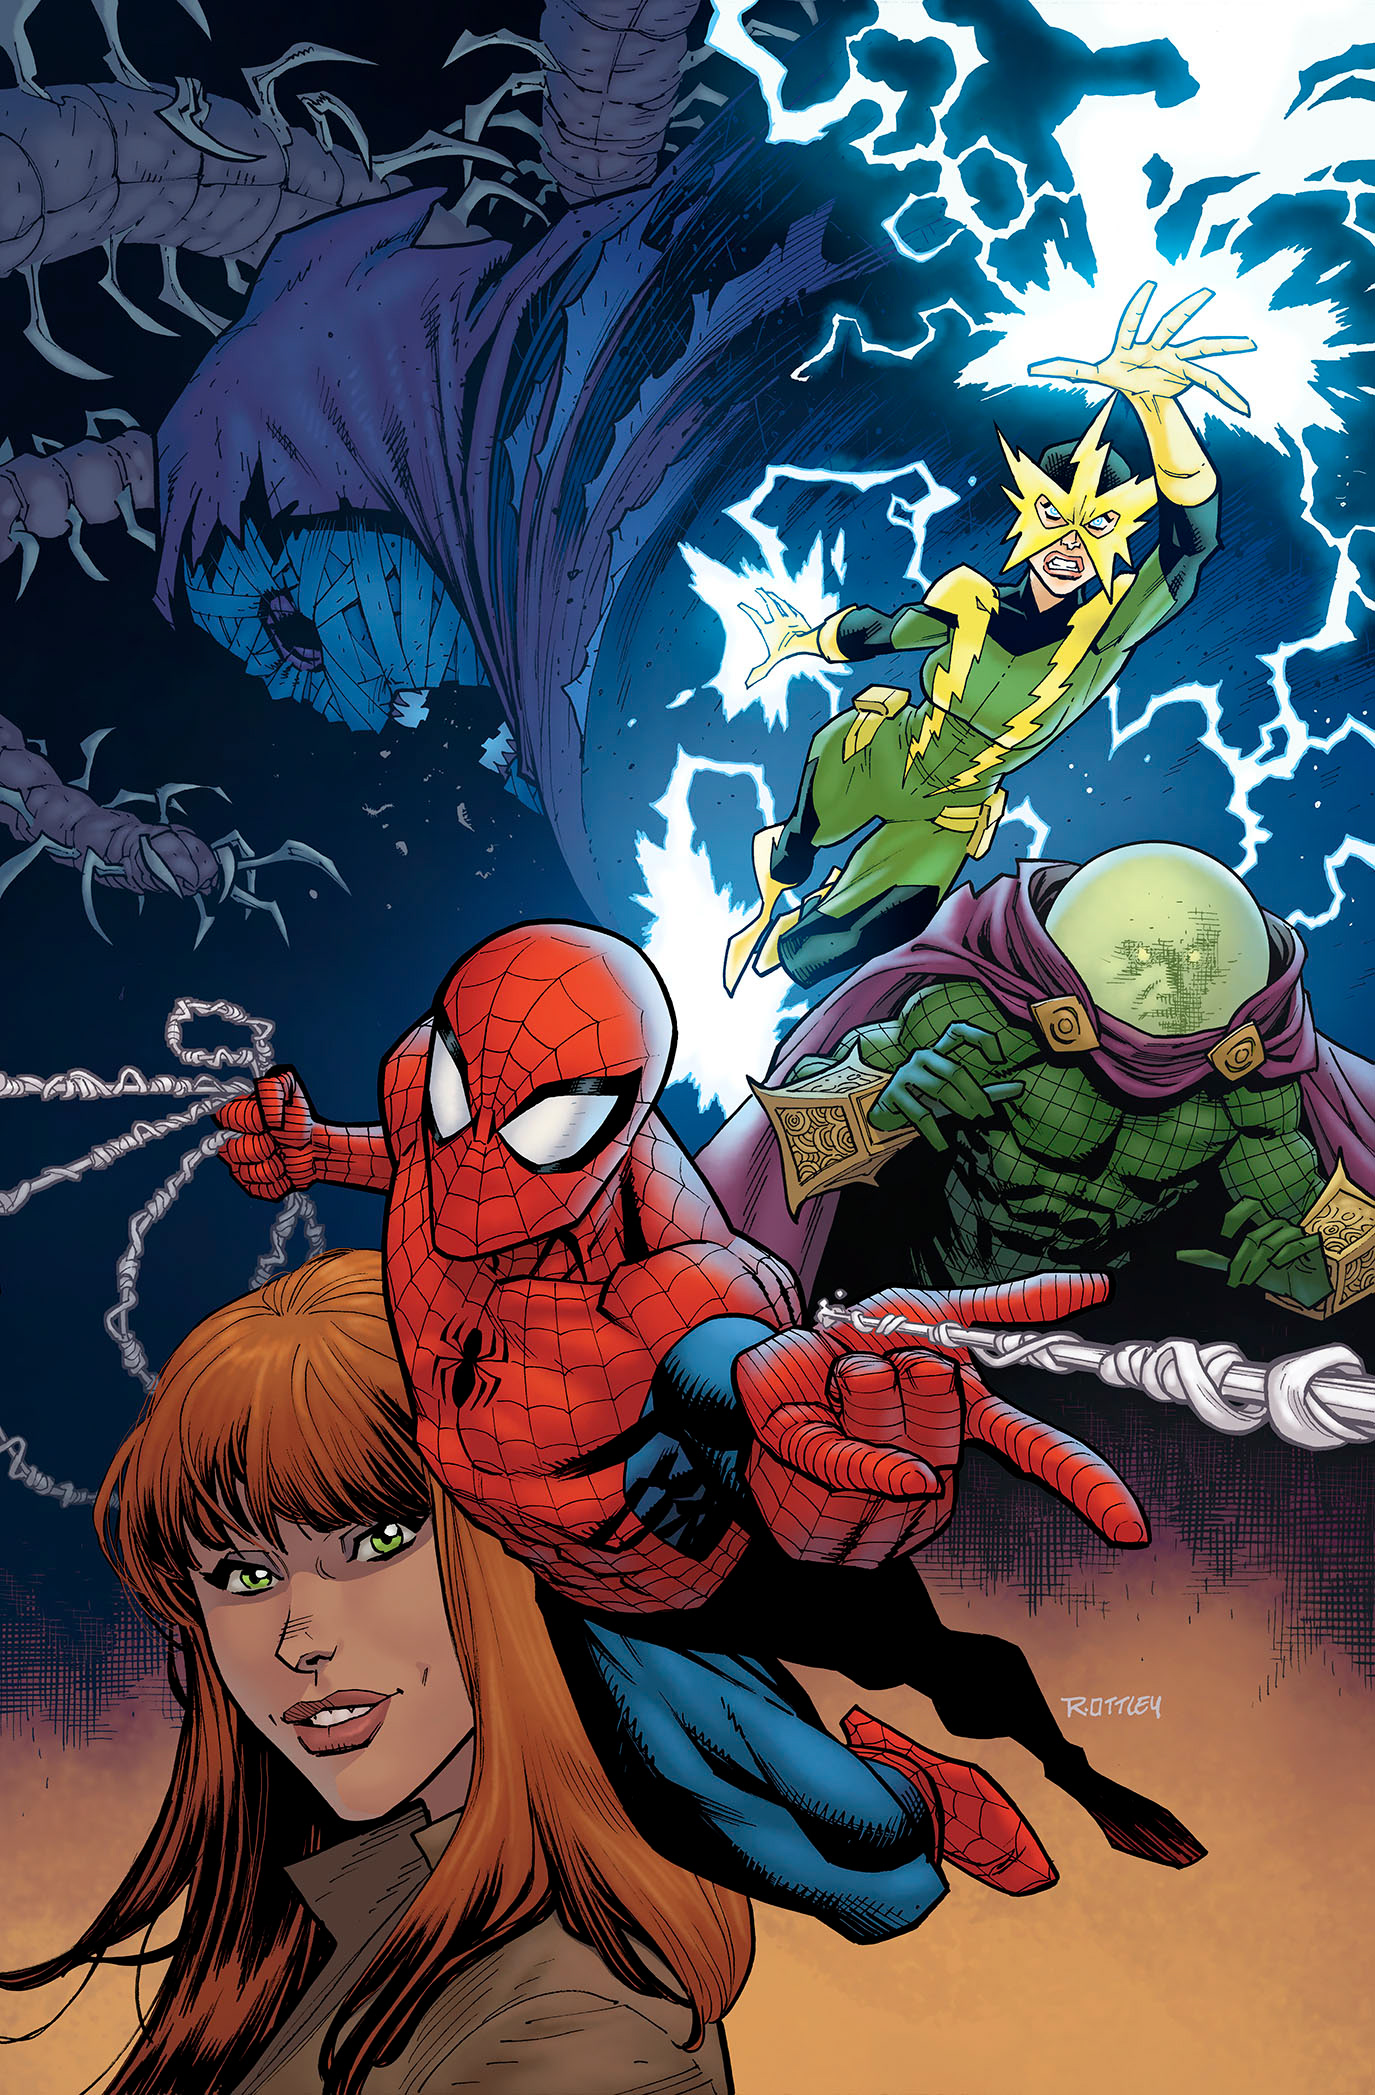 The Amazing Spider-Man Vol 5: Behind the Scenes review